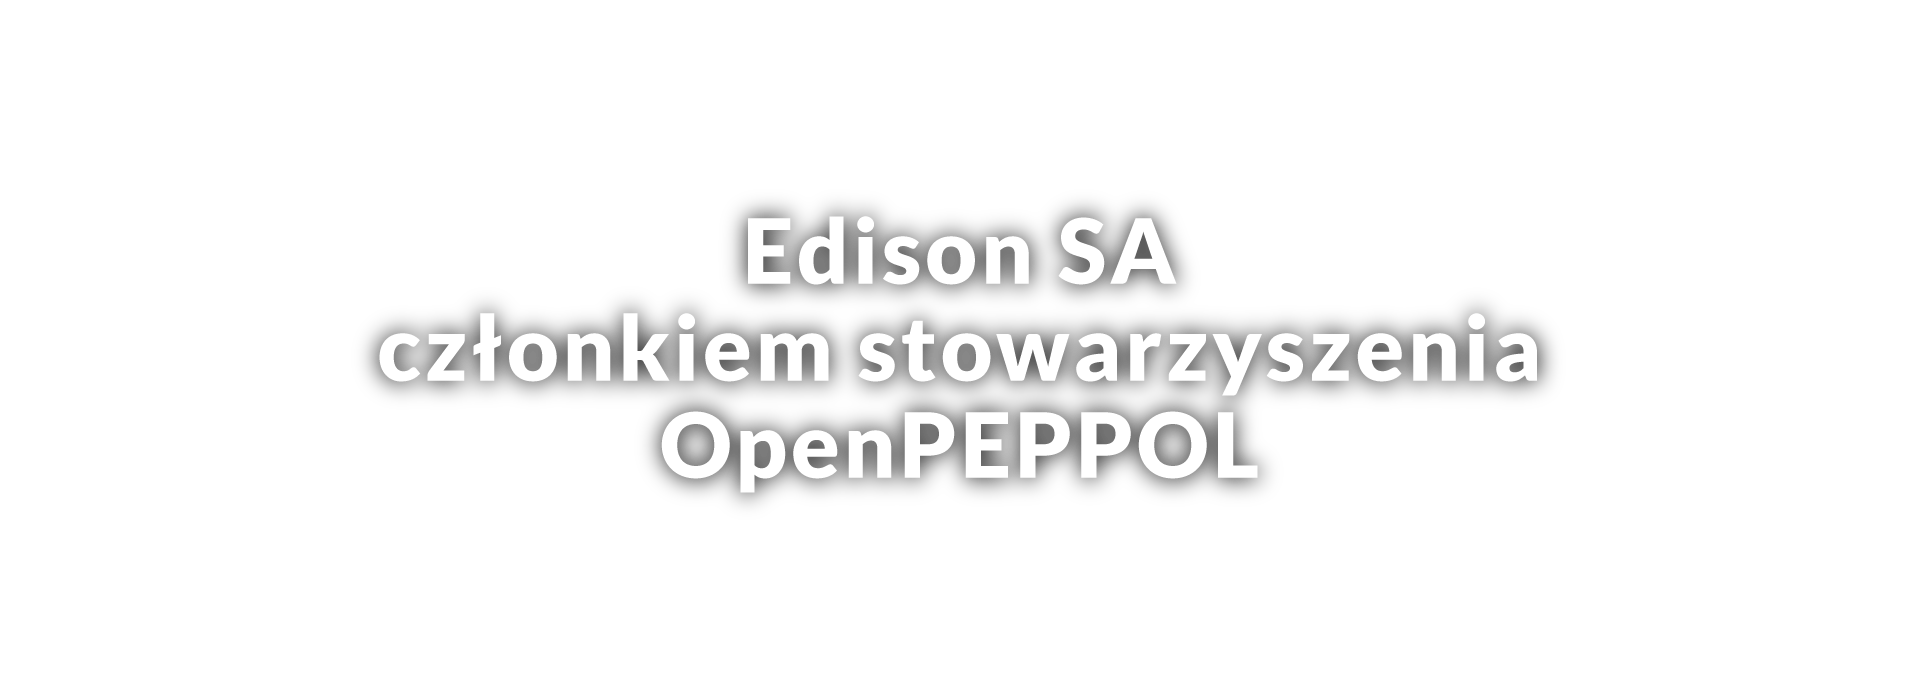 Open Peppol